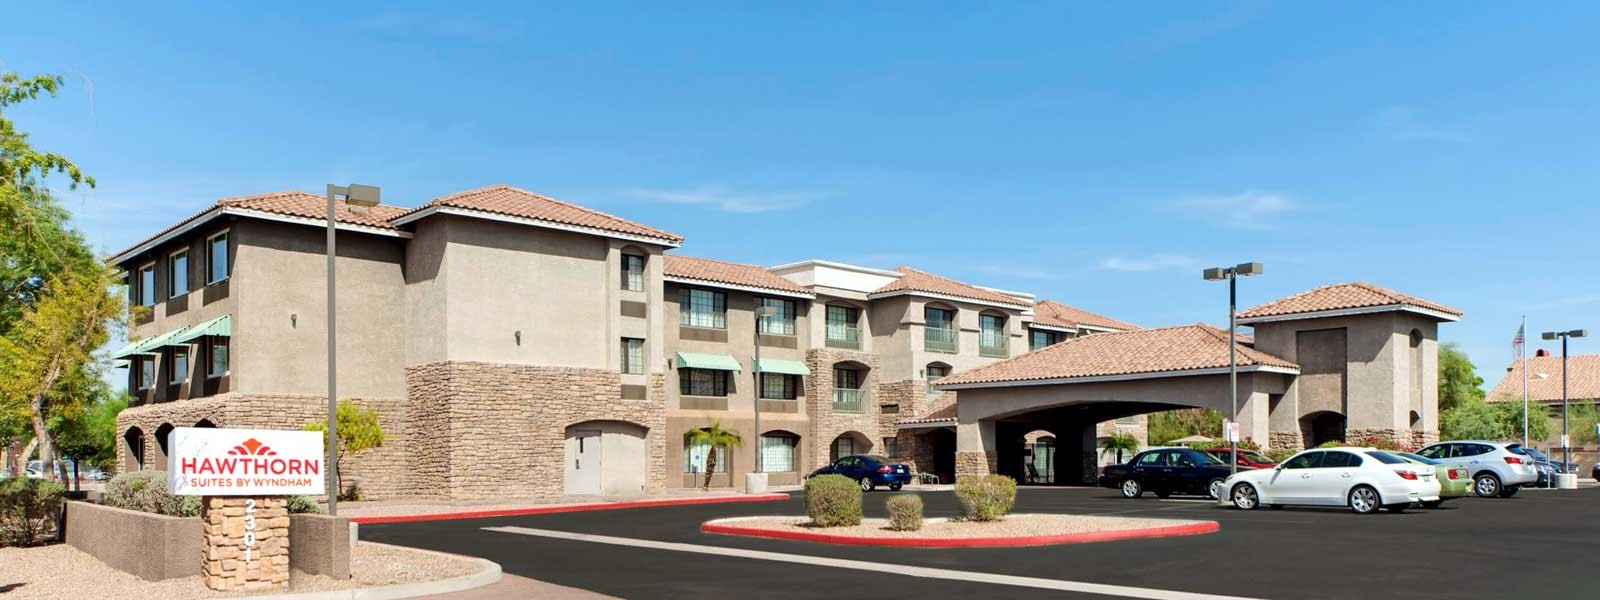 House Cleaning Tempe Az